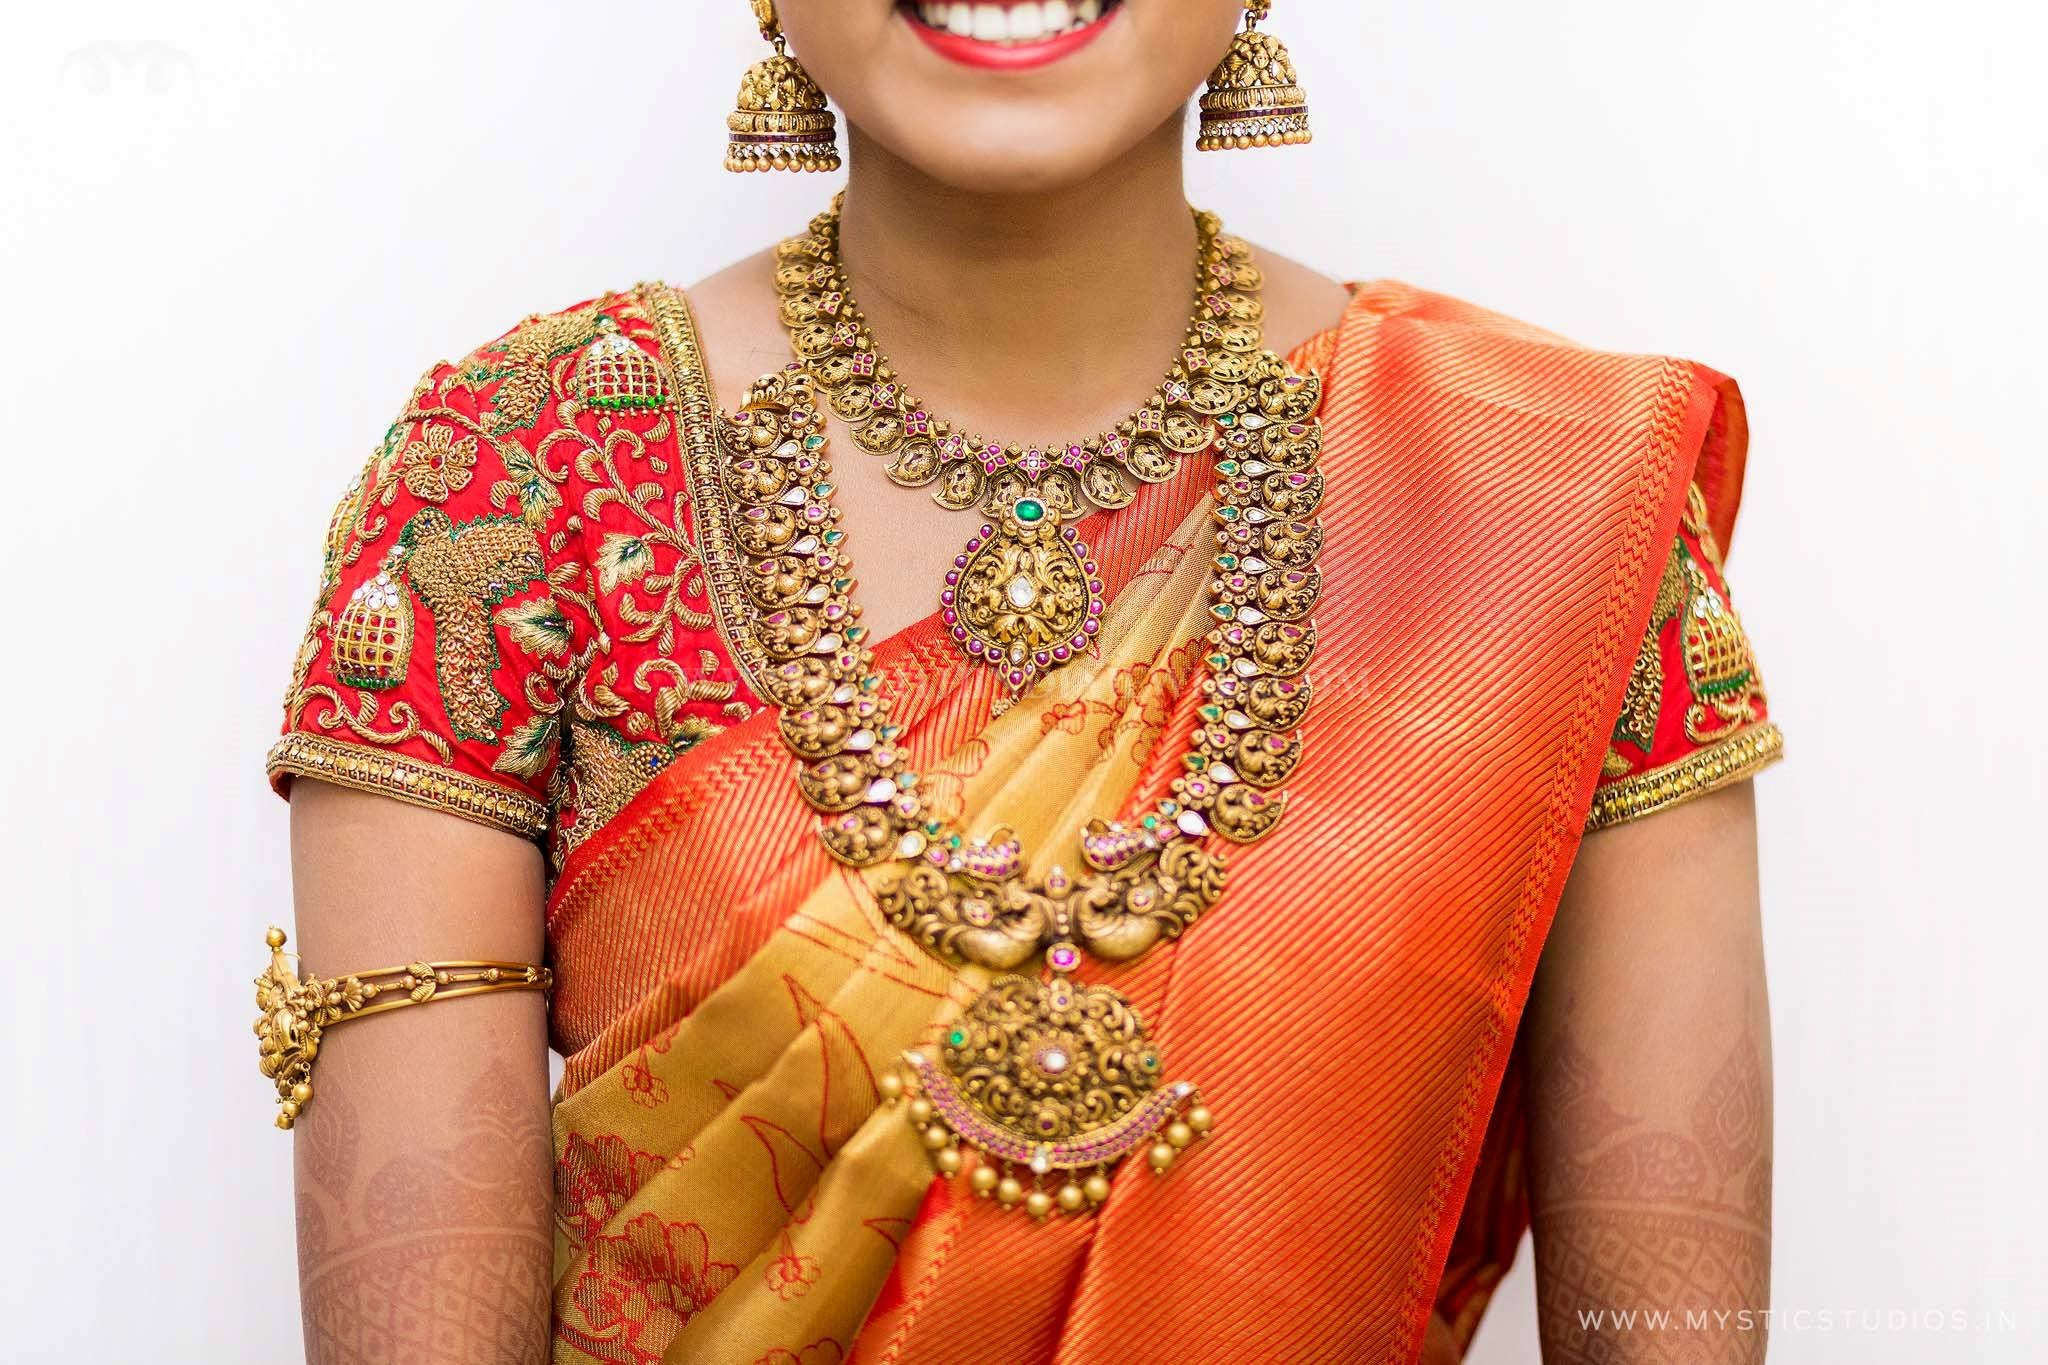 Indian Gold Jewellery On Bride